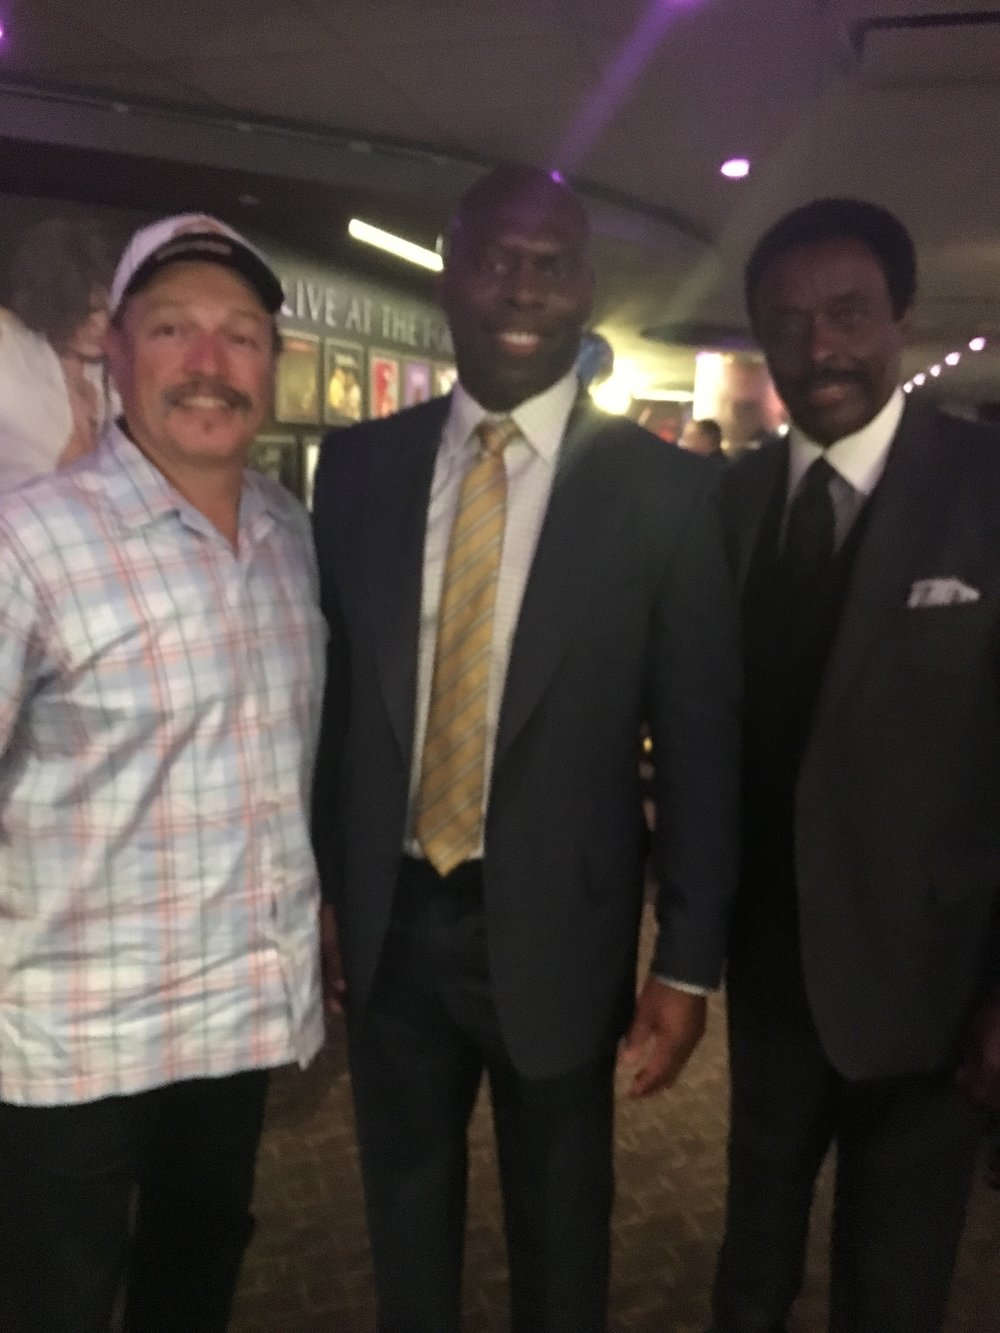 Tony with San Diego Chargers coach Anthony Lynn and CBS newscaster Jim Hill